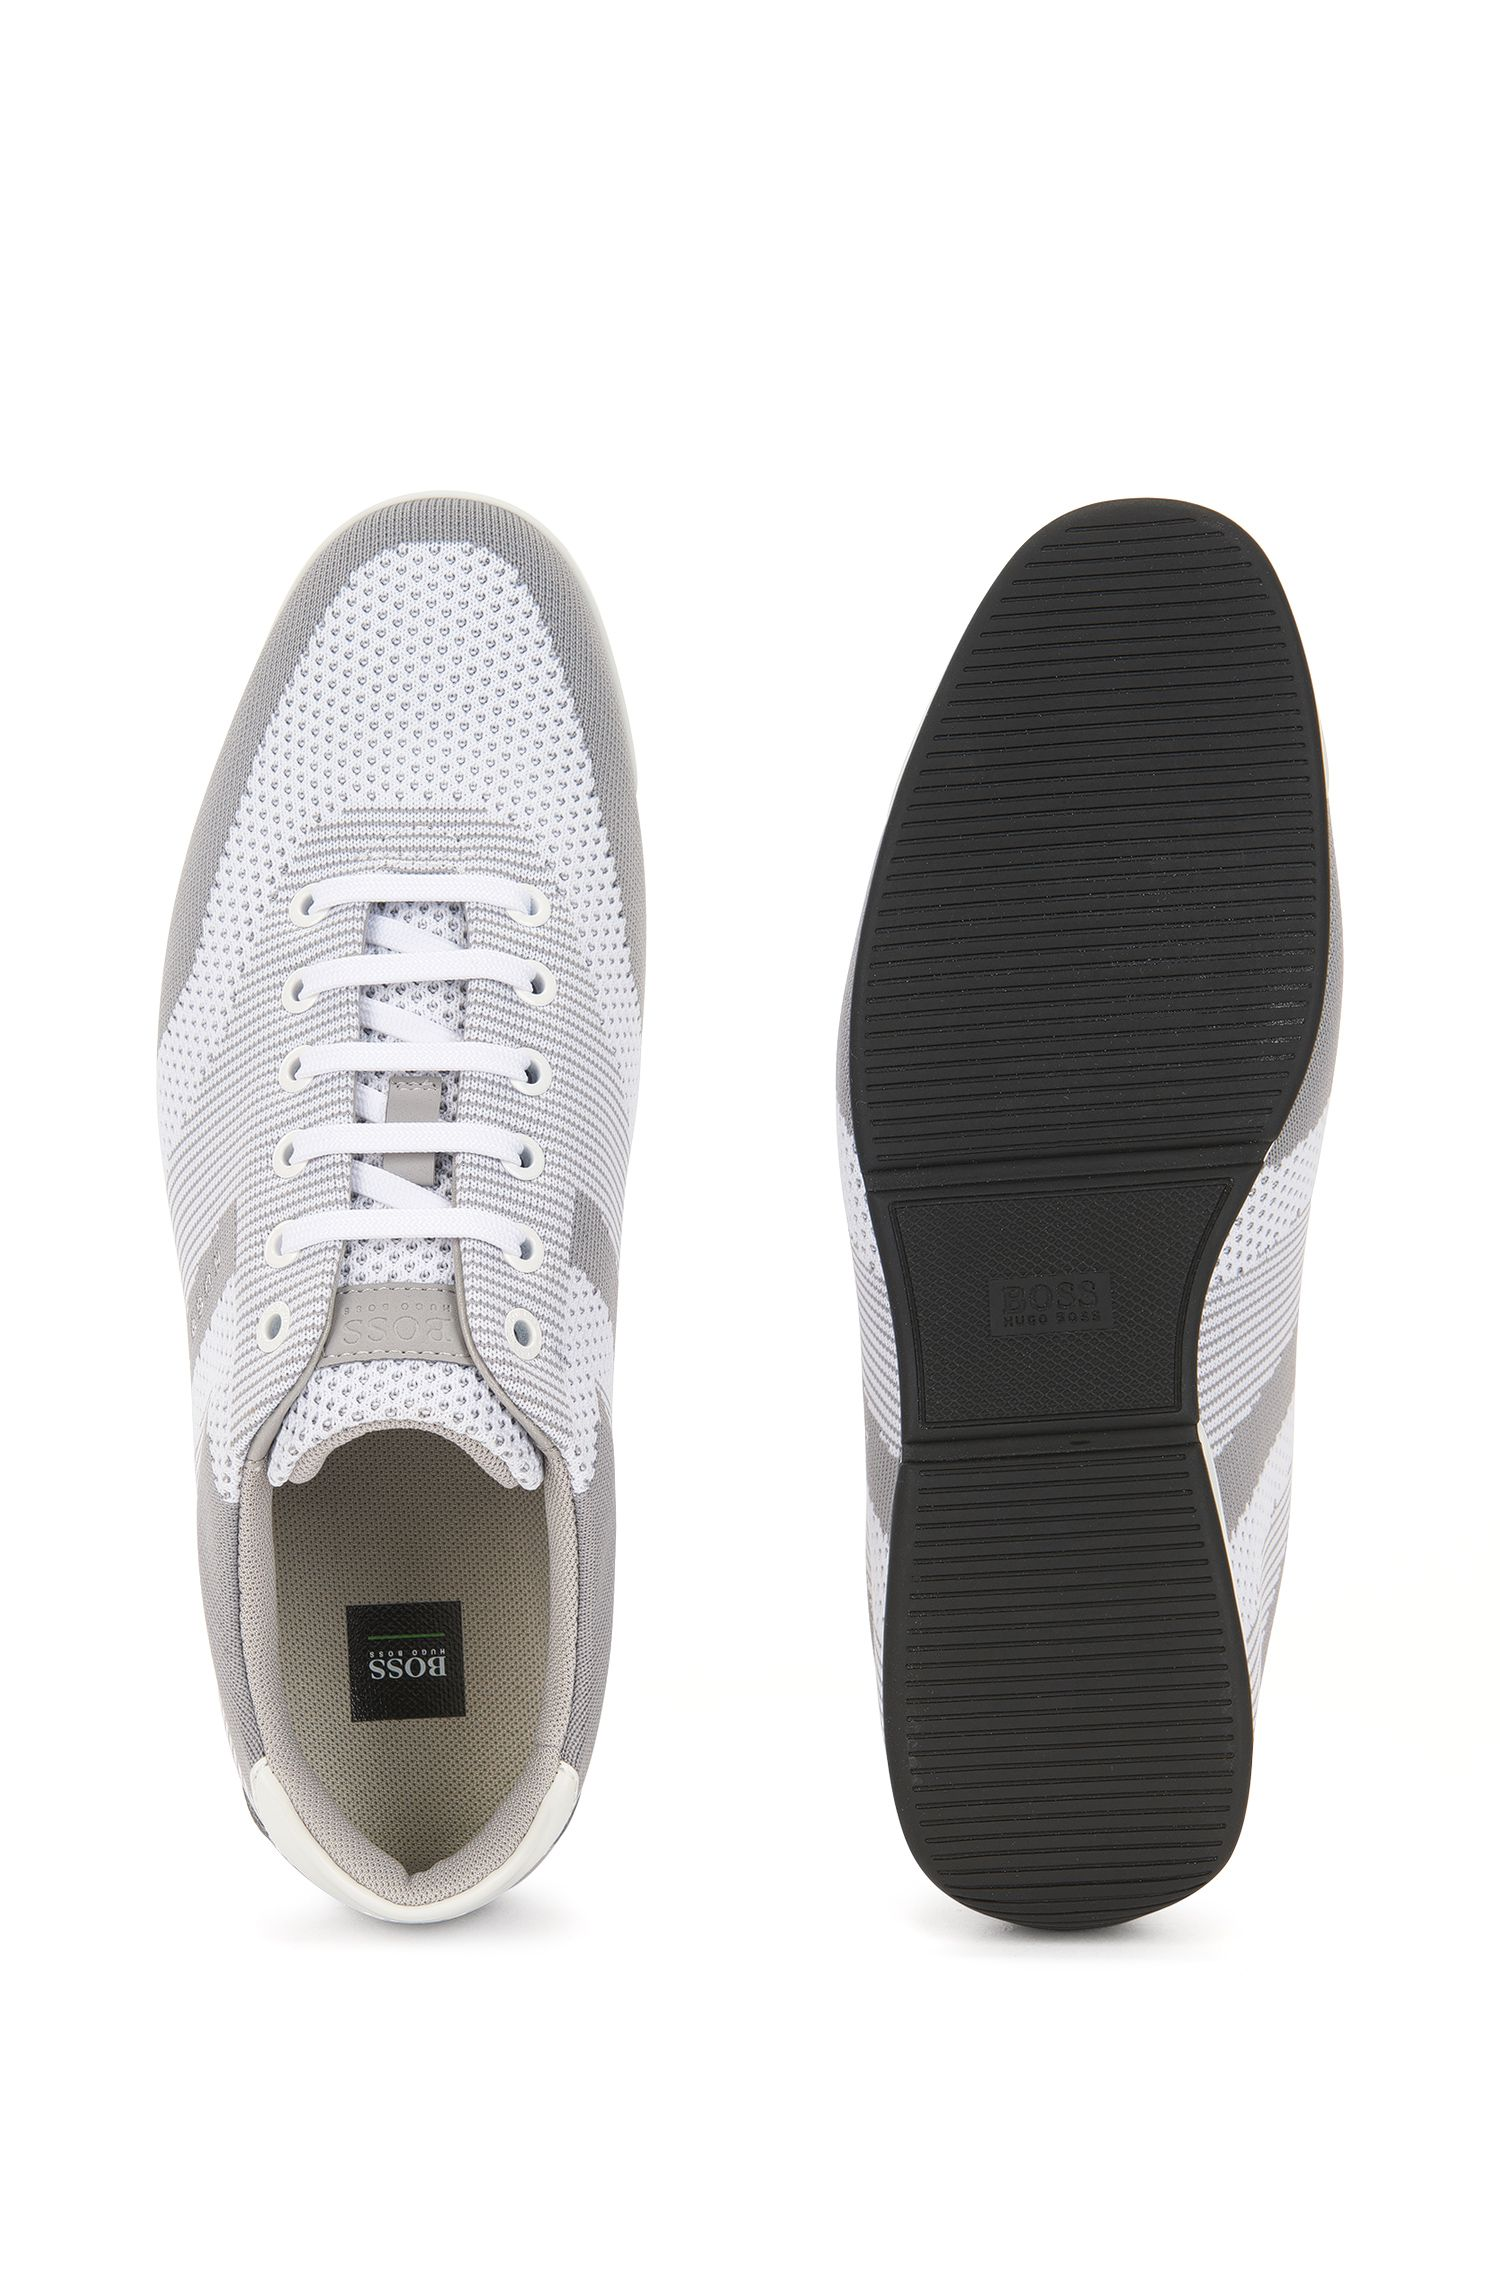 Low-top trainers with seamless knitted uppers